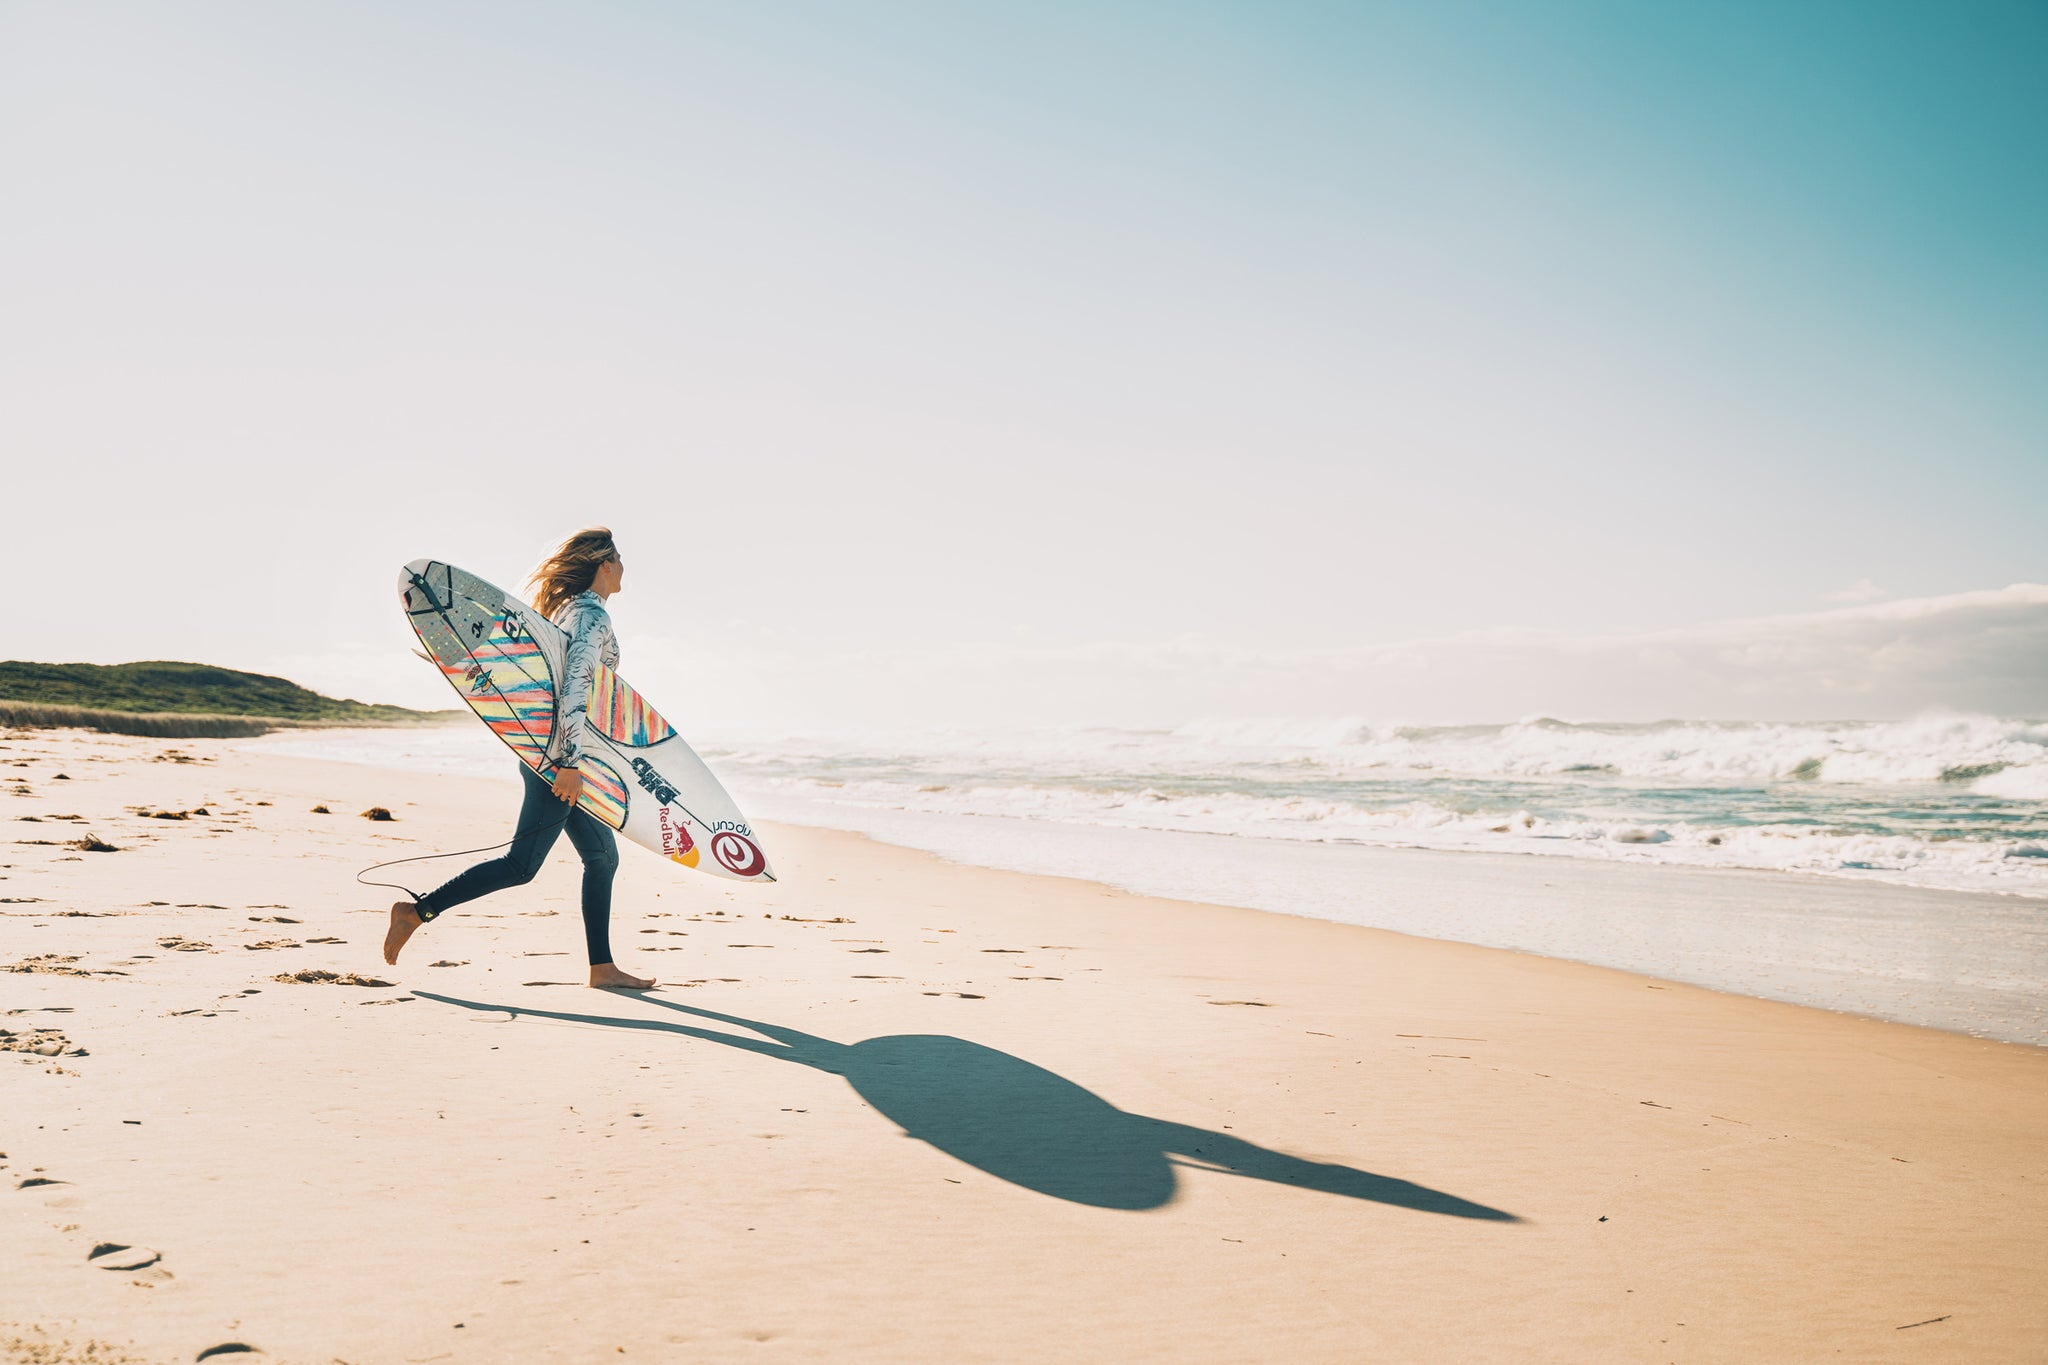 Molly Picklum Joins The Creatures of Leisure Surf Team